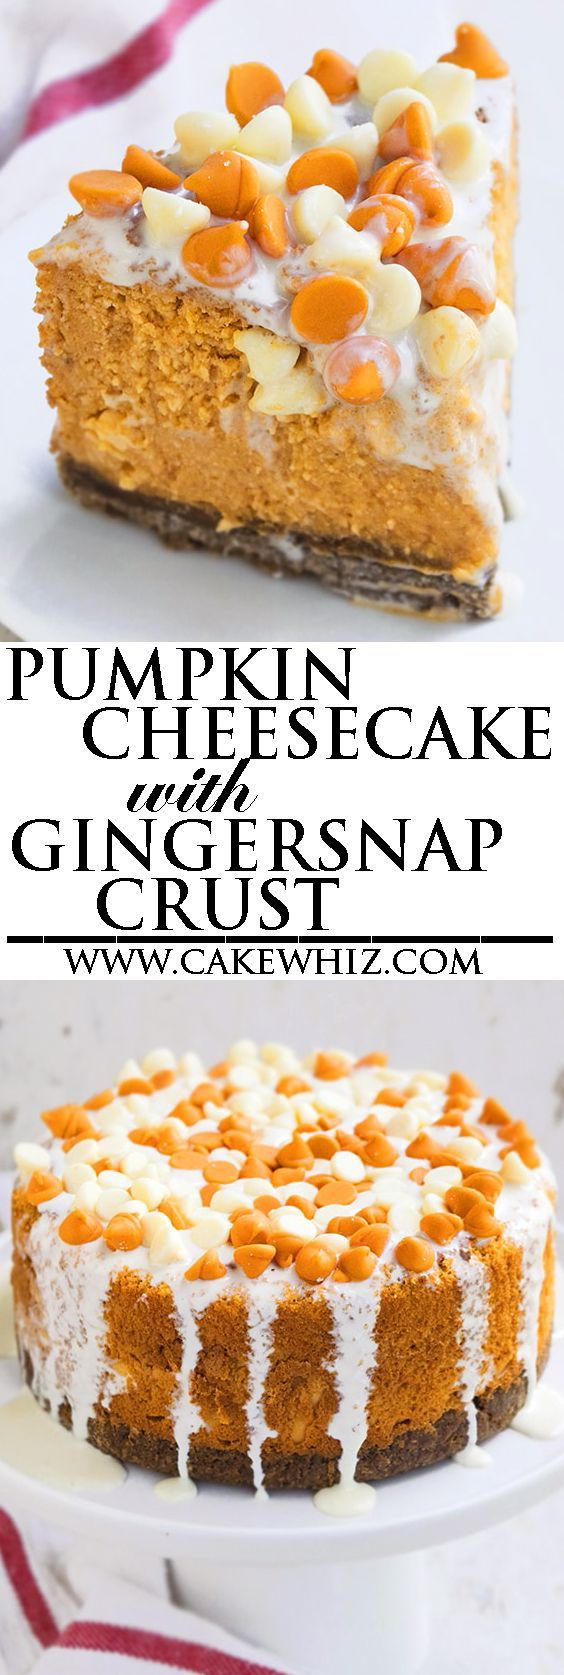 Rich and creamy PUMPKIN CHEESECAKE recipe with gingersnap crust and white chocolate ganache glaze. Lots of tips and tricks for making perfect cheesecake every time! {Ad} From cakewhiz.com